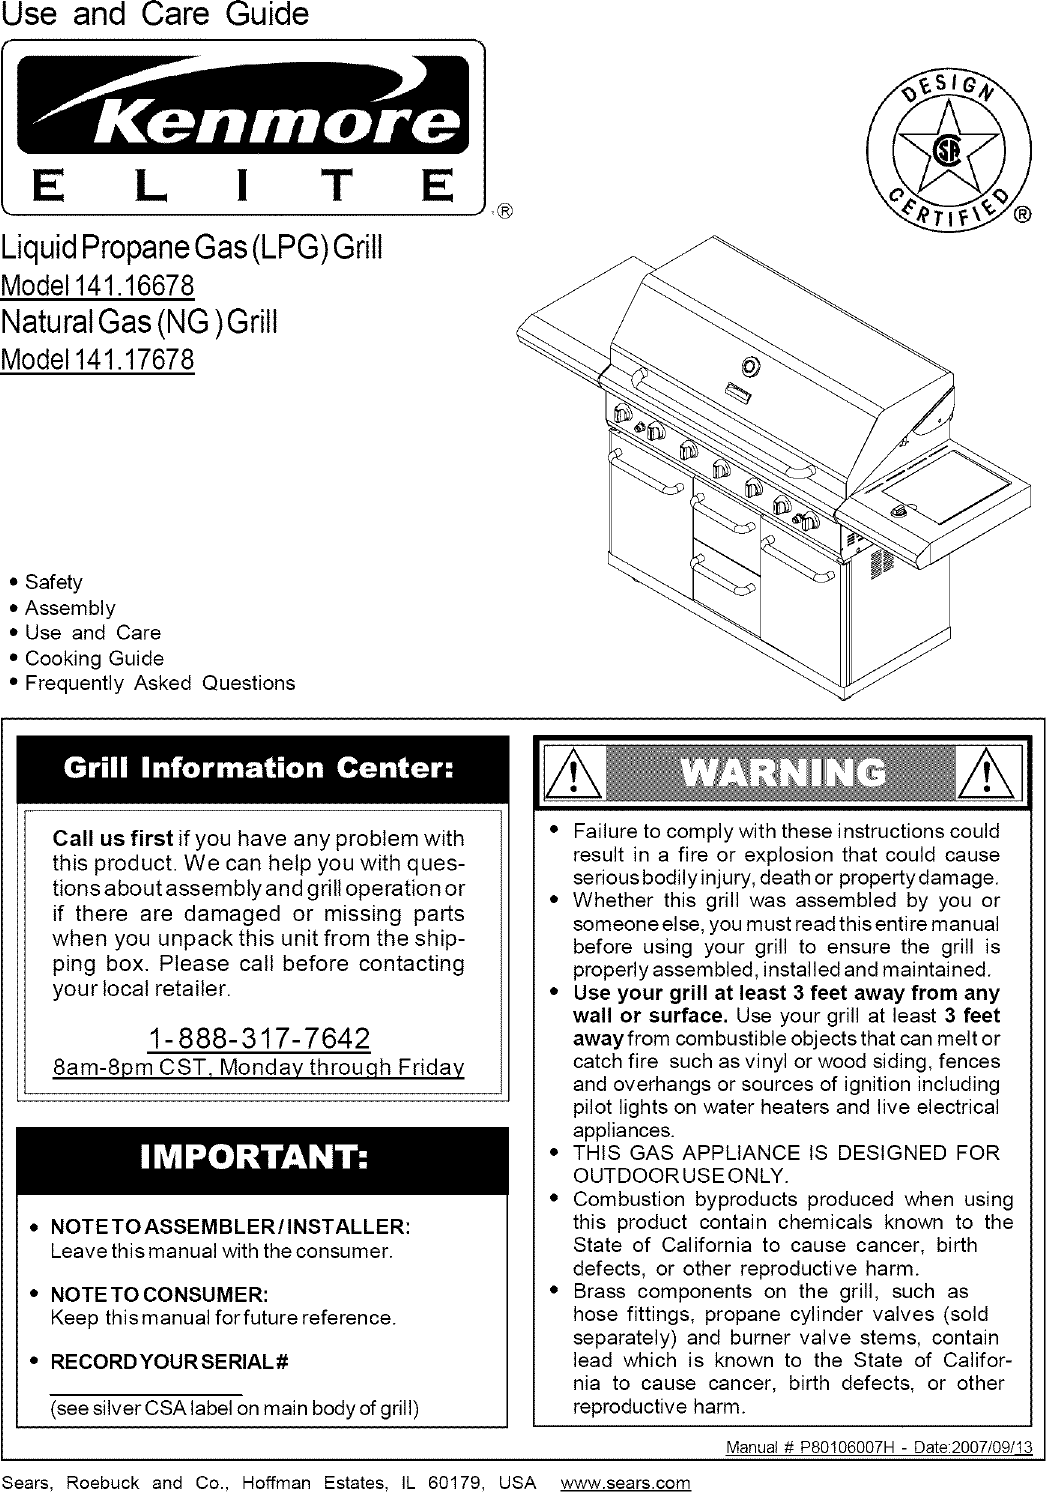 Kenmore Elite 14116678800 User Manual GAS GRILL Manuals